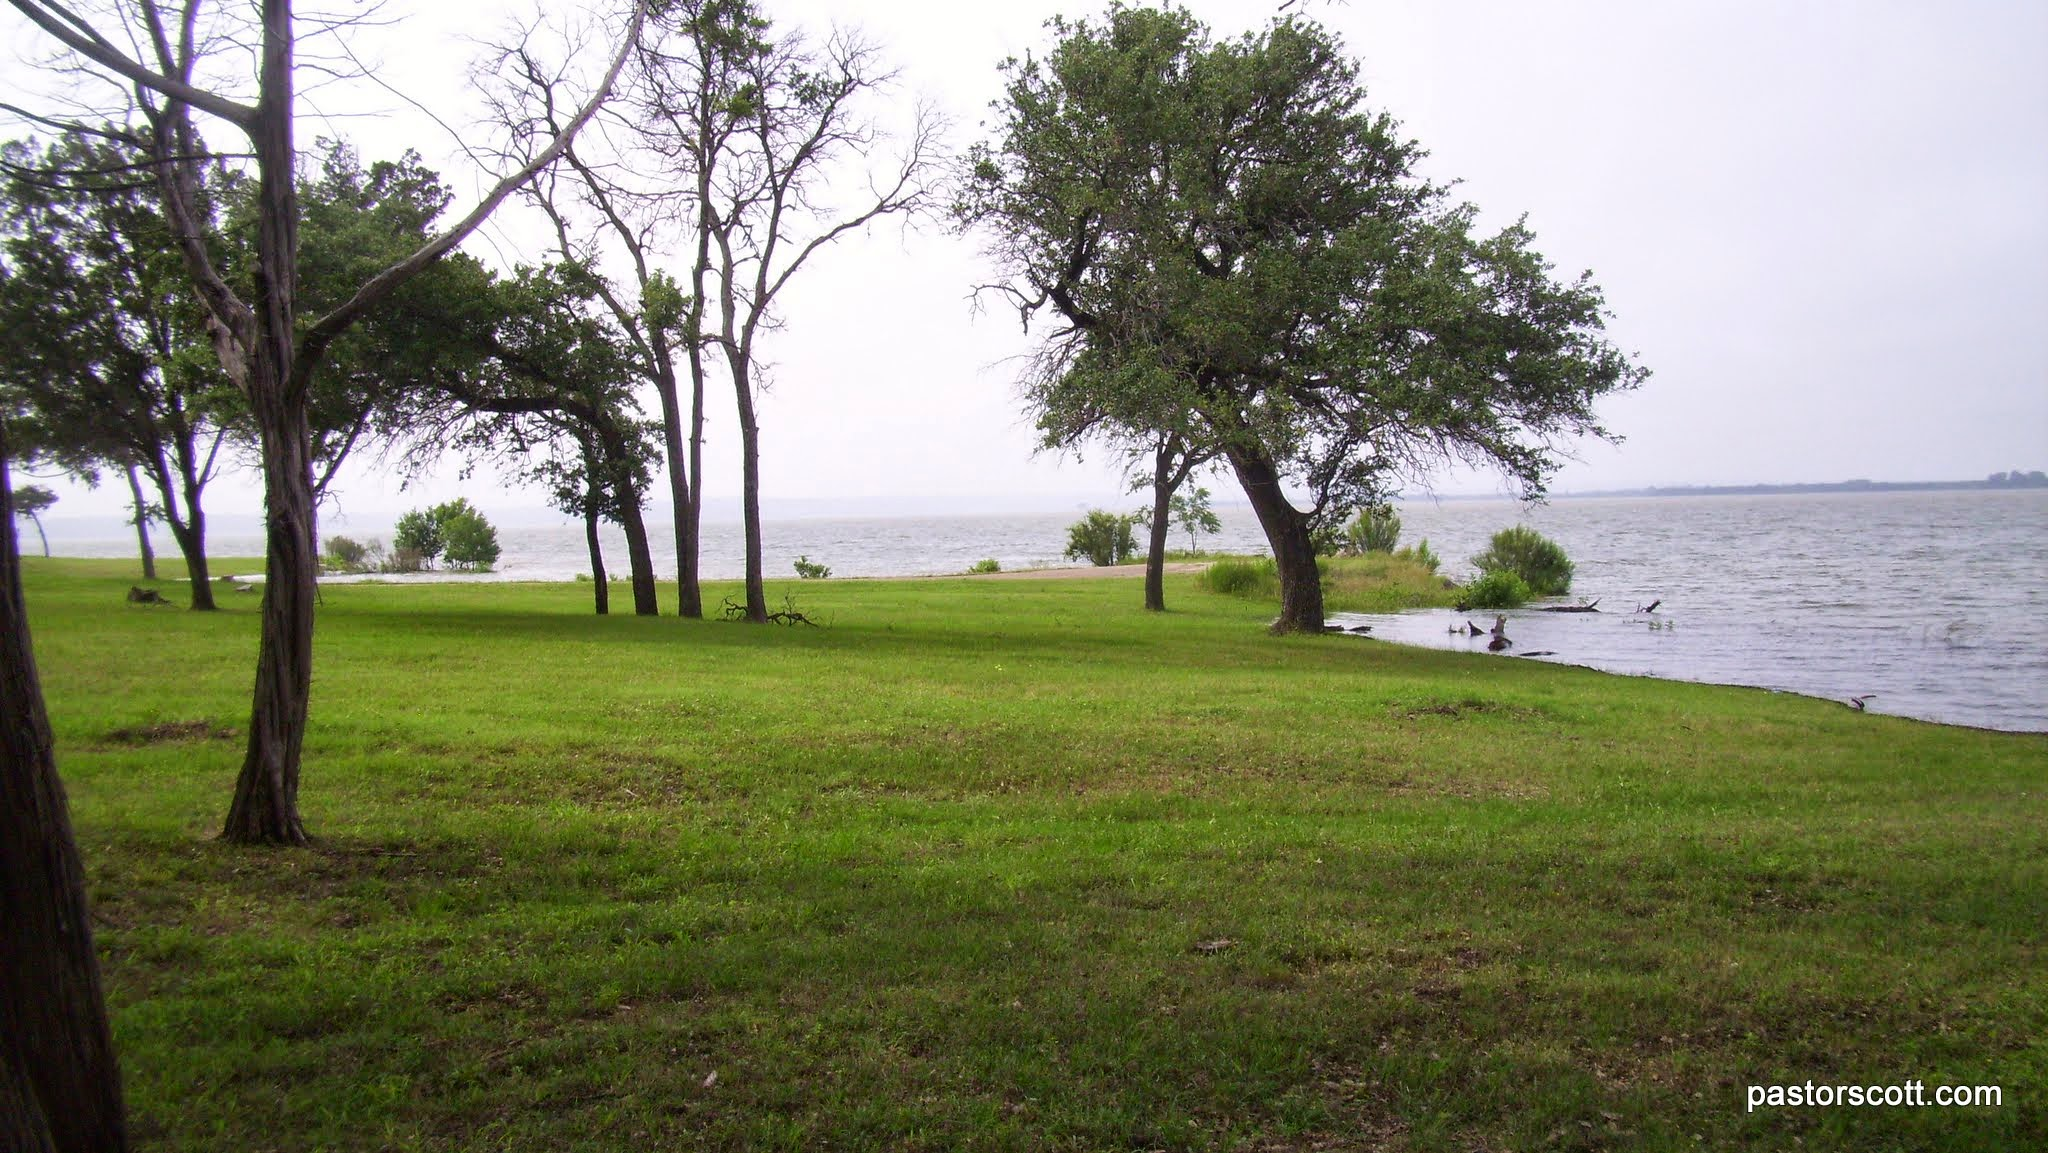 Campground Review: Airport Park COE, Waco, TX | Here and There